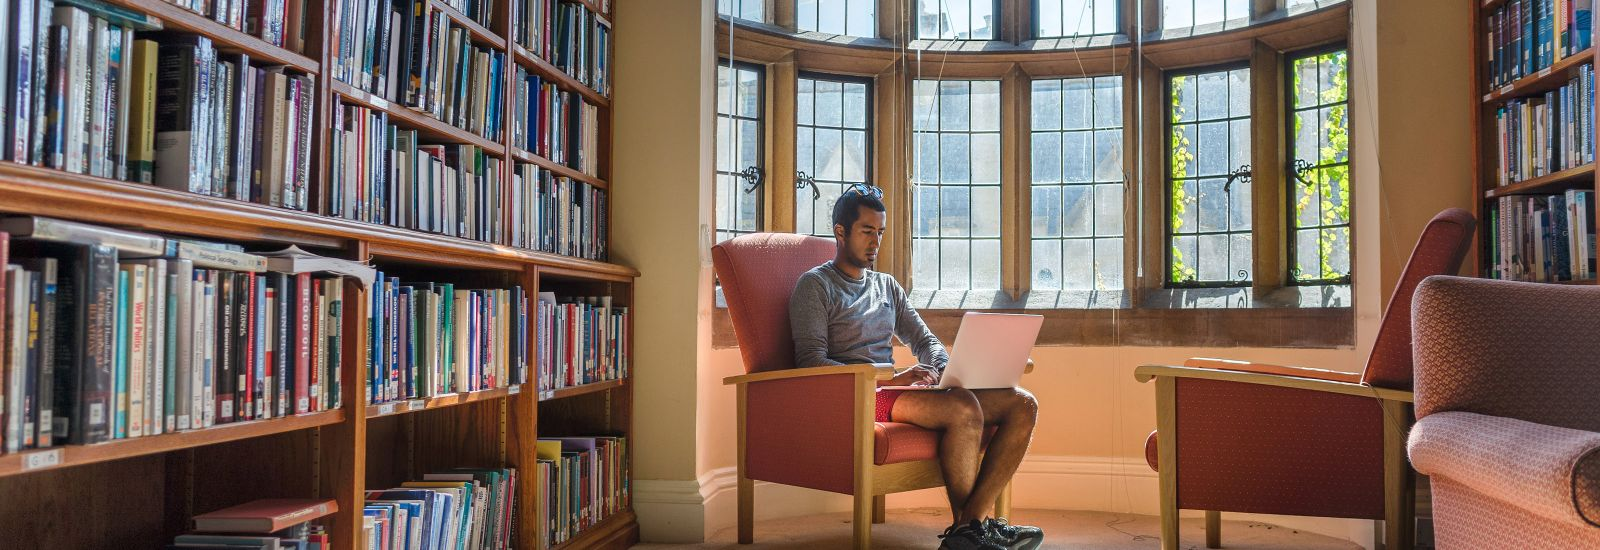 Student sitting with a laptop in the bay window of a library